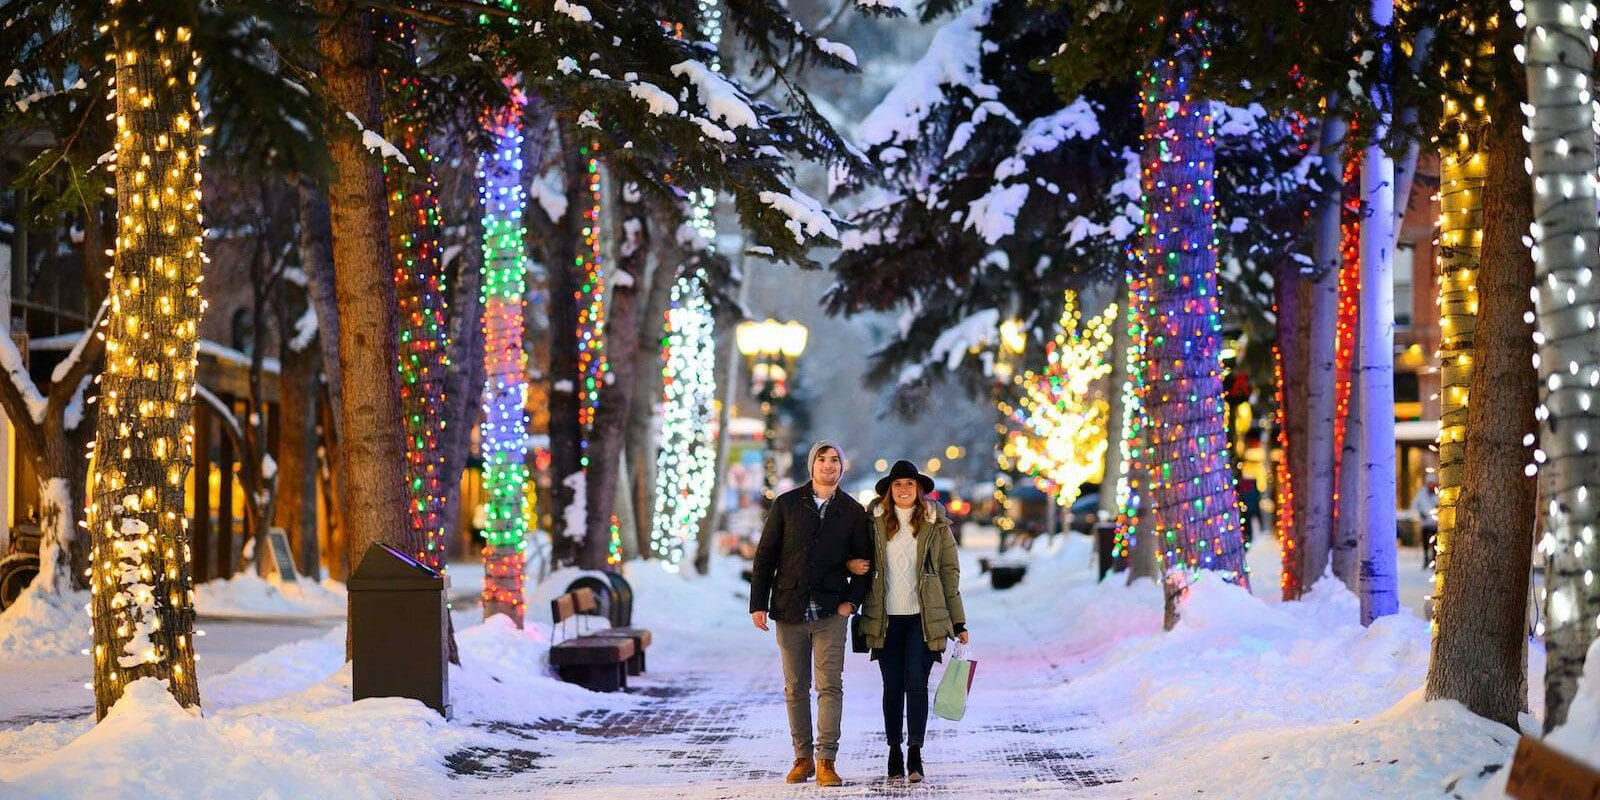 Image of a couple walking down a lane between illuminated trees during the holidays in the snow